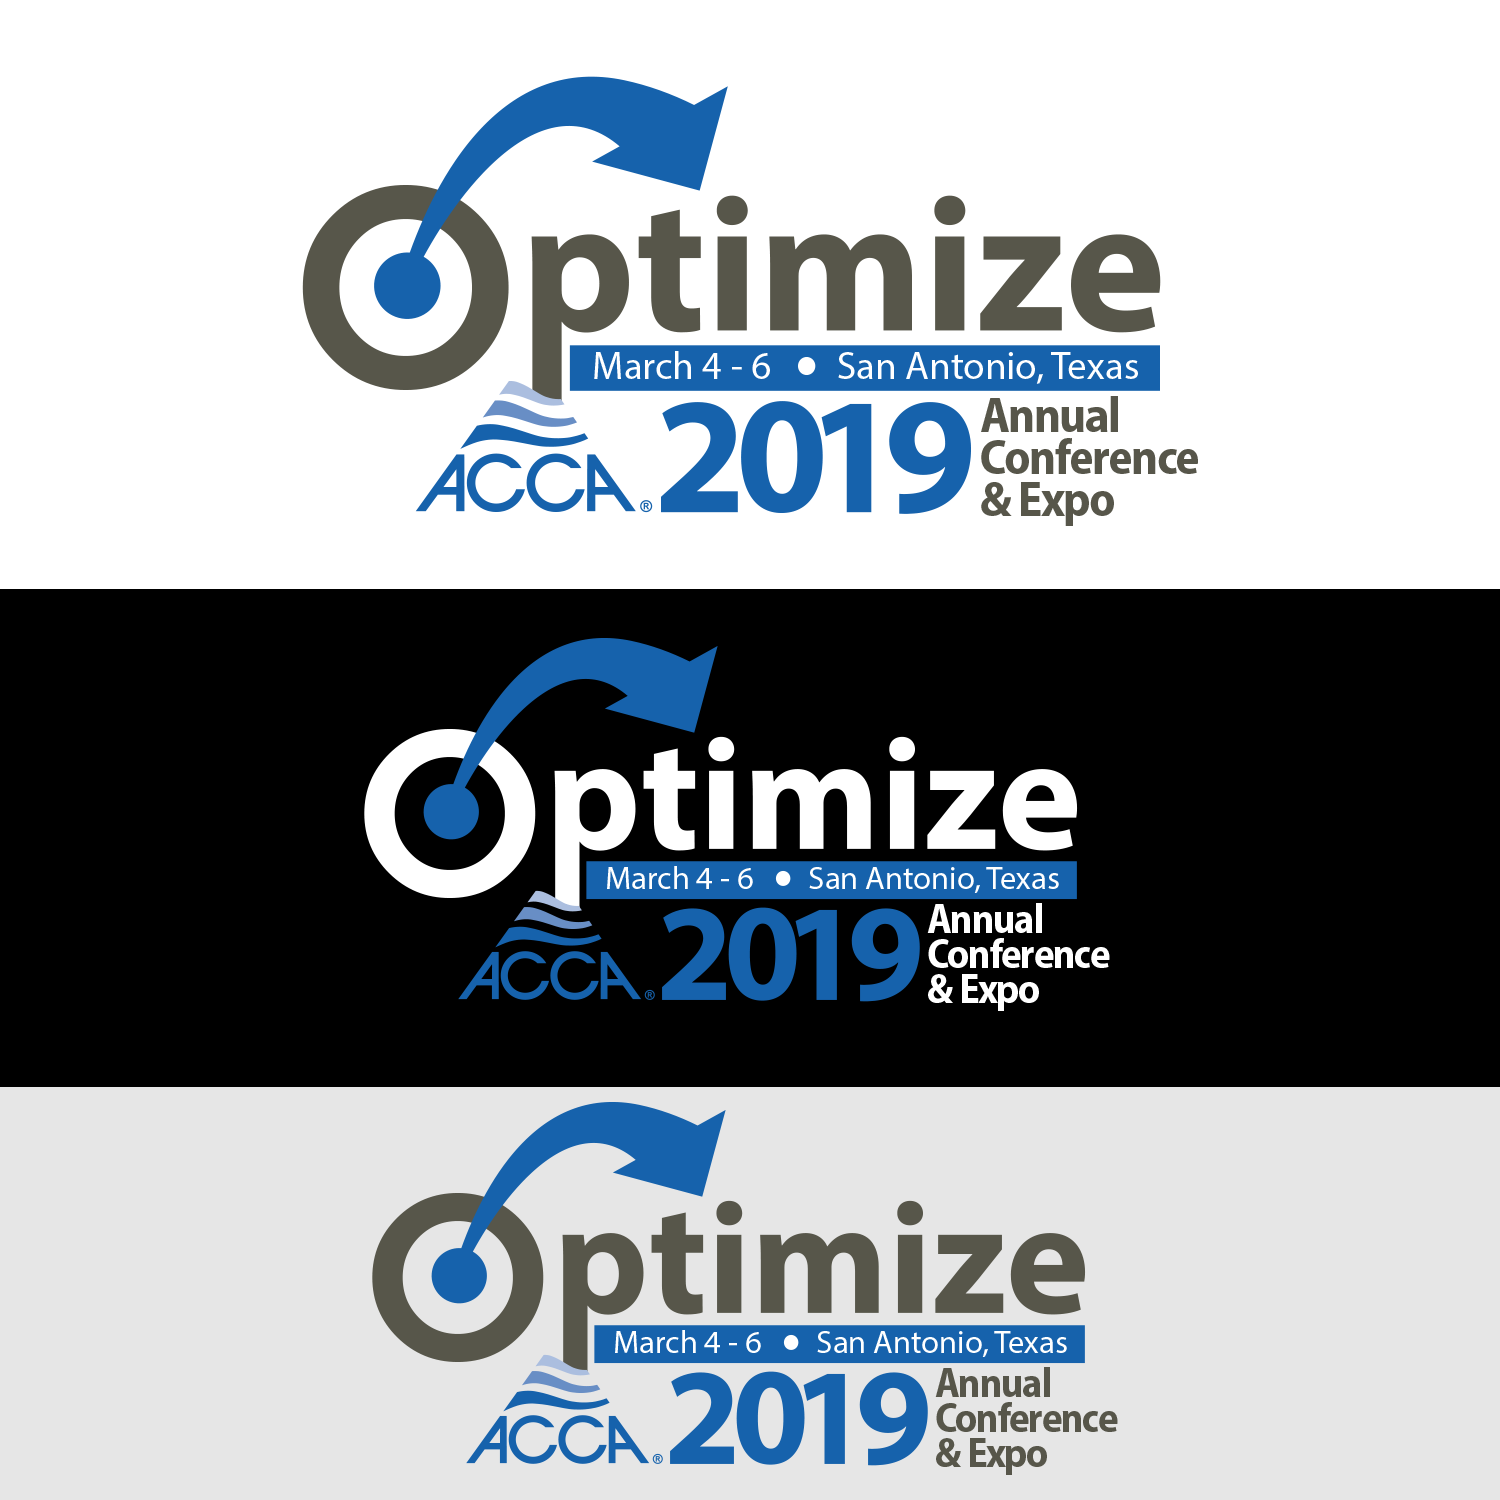 bold, professional, air conditioning logo design for optimize